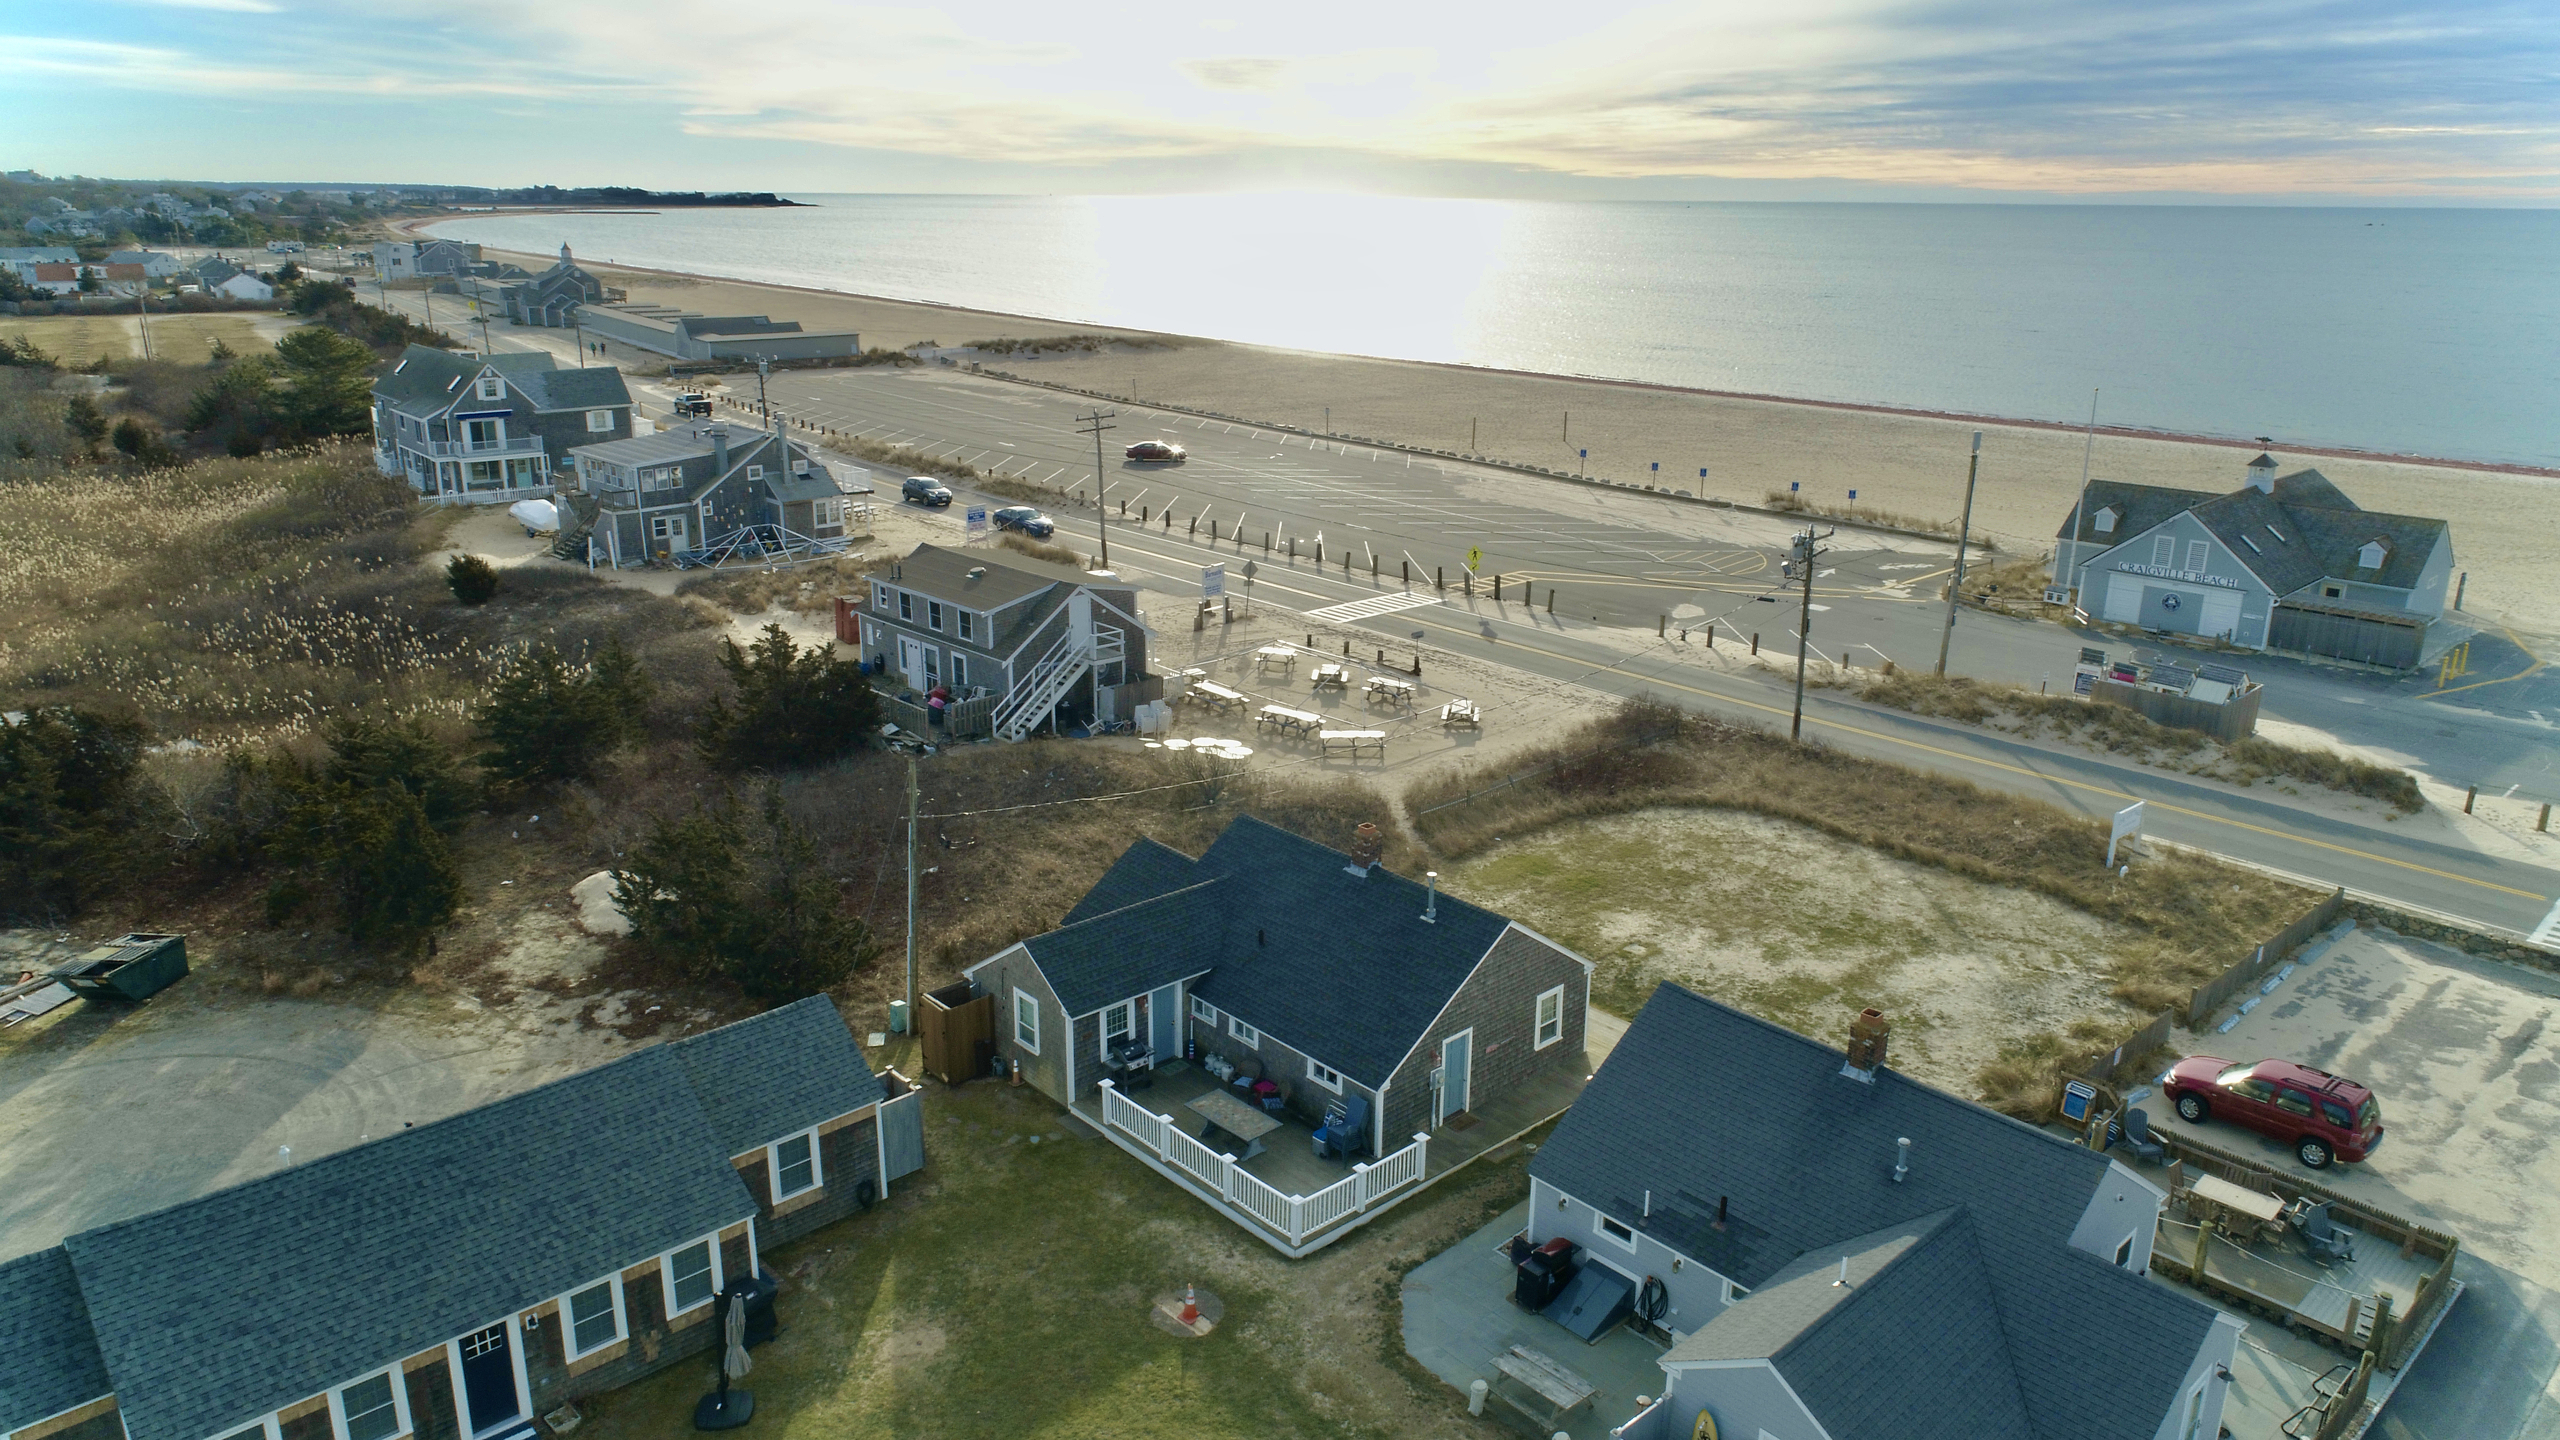 1006 Craigville Beach Rd , Barnstable, Ma 02632 | Listed By Griffin Realty Group | MLS # 72772679